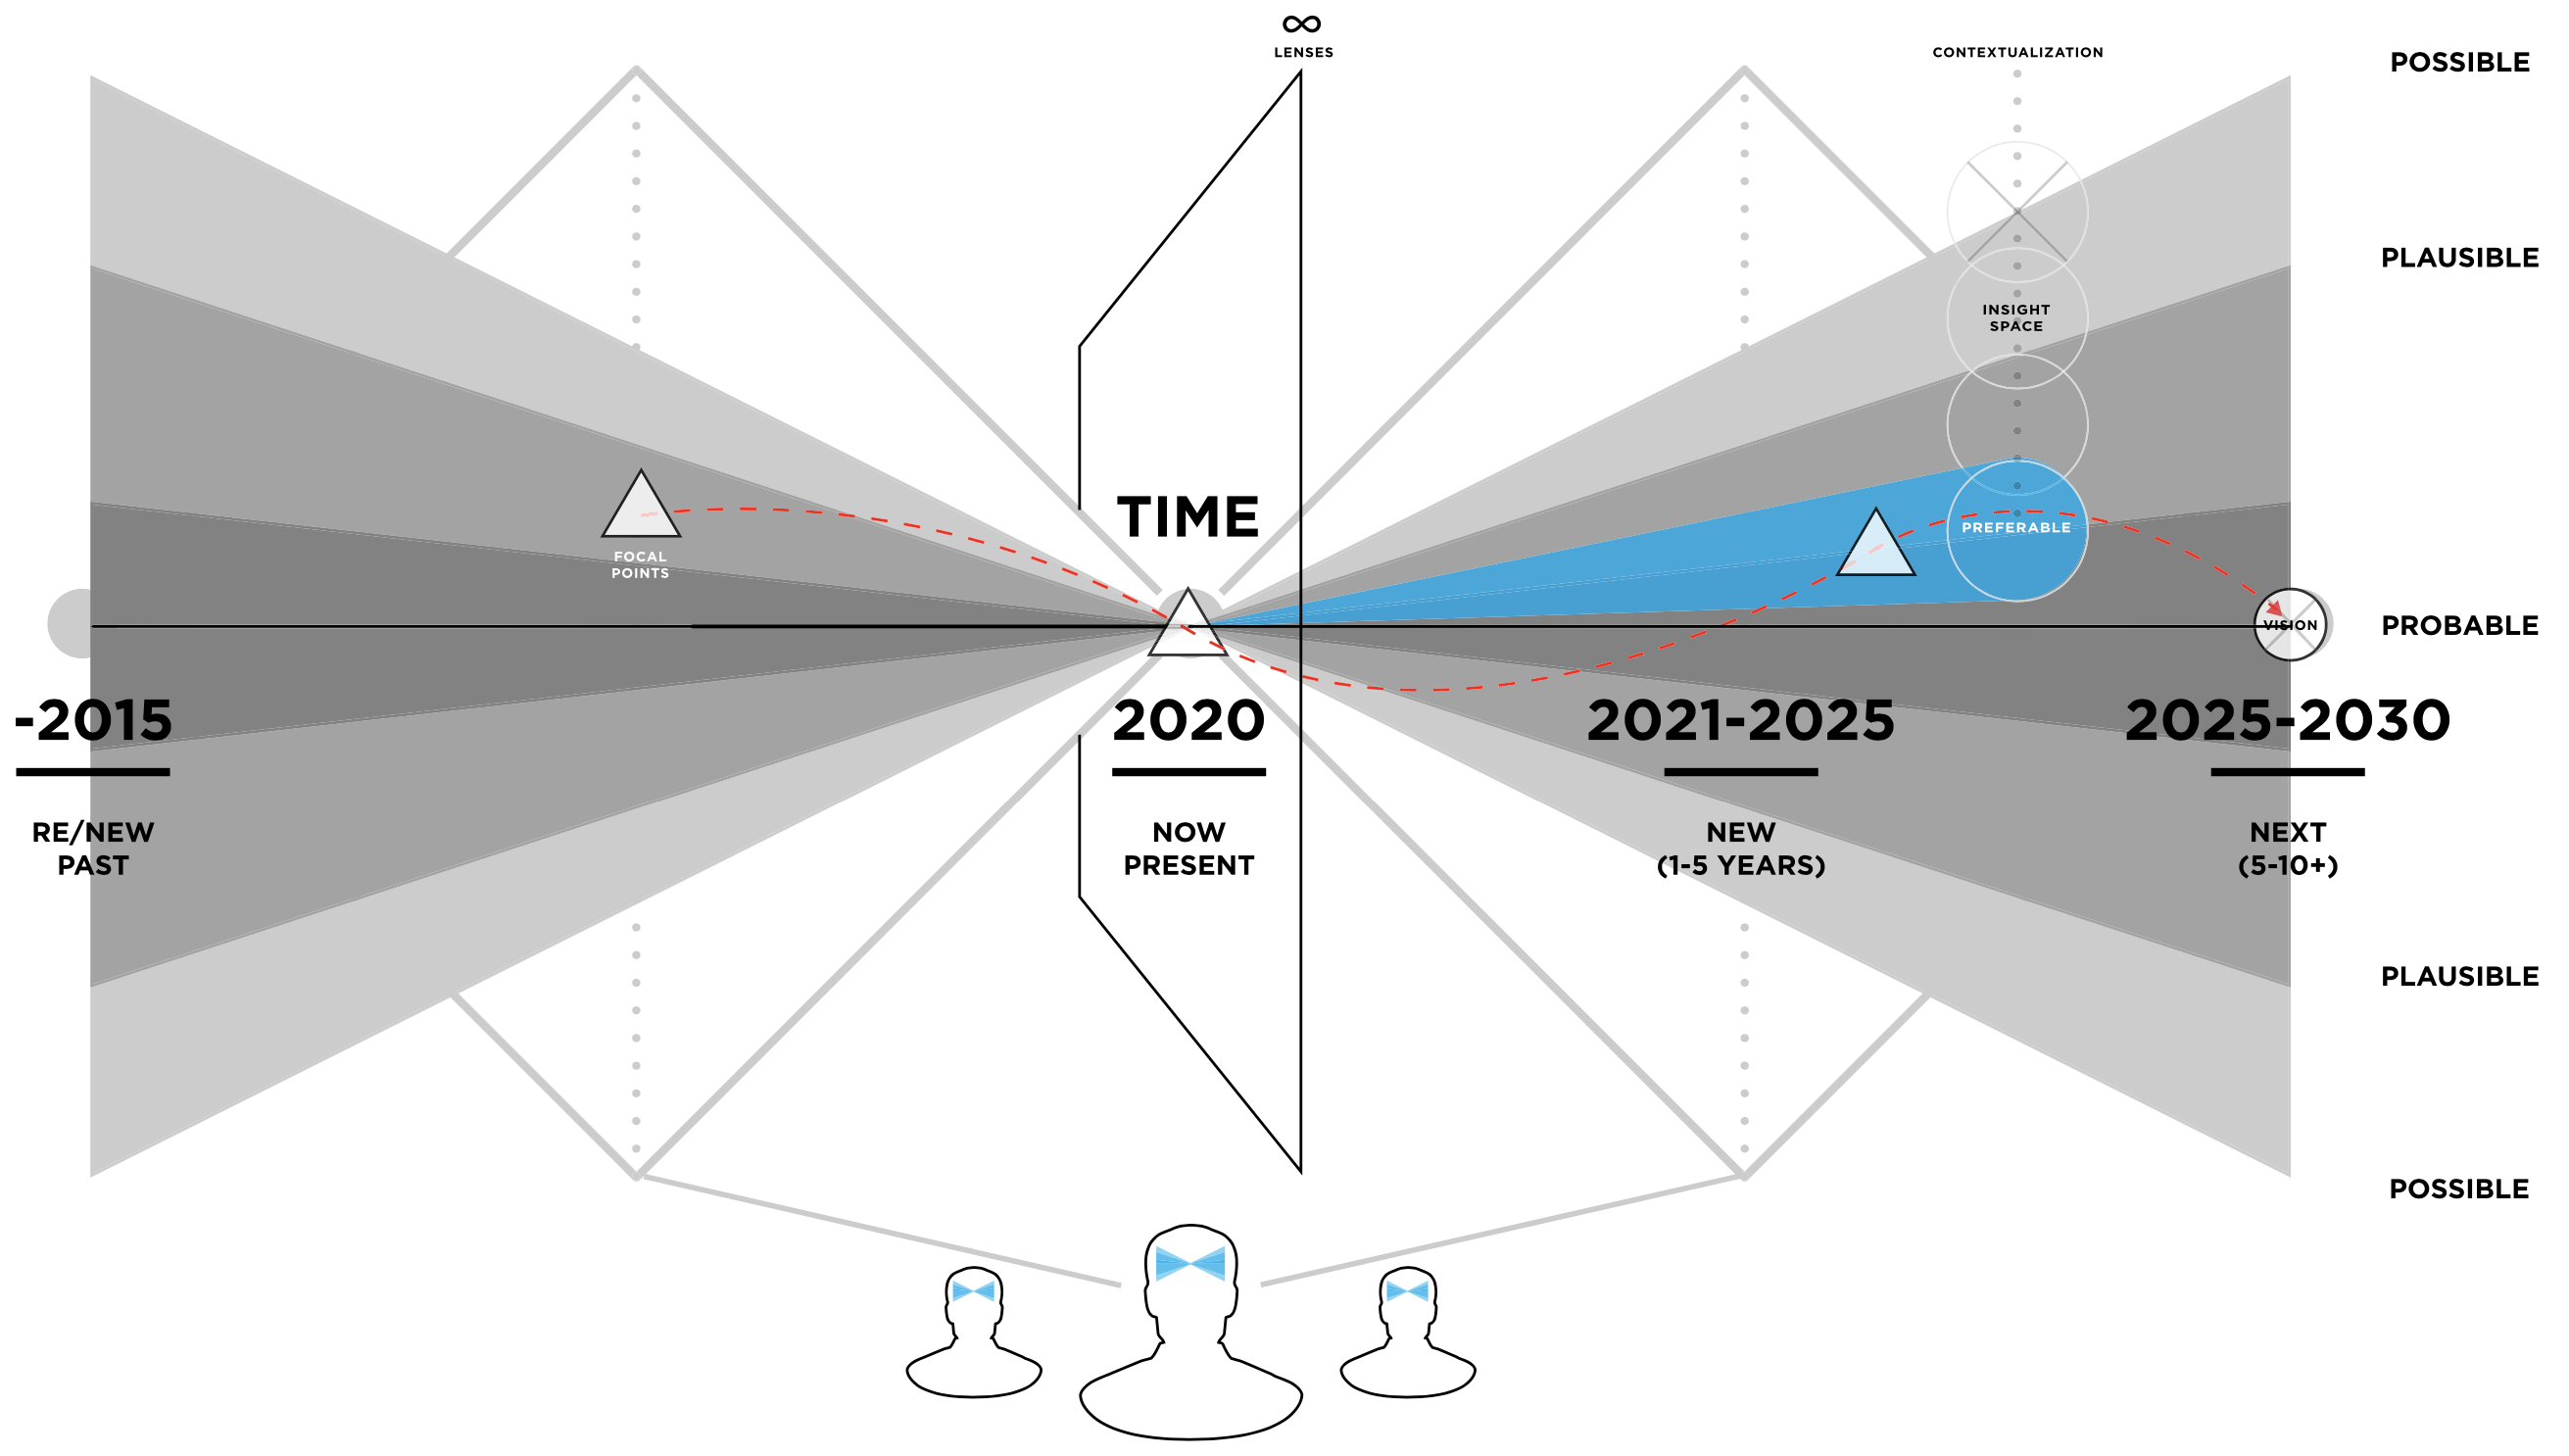 Five Dimensions Of Speculative Thinking By Manish Chauhan The Experience Of Design Medium